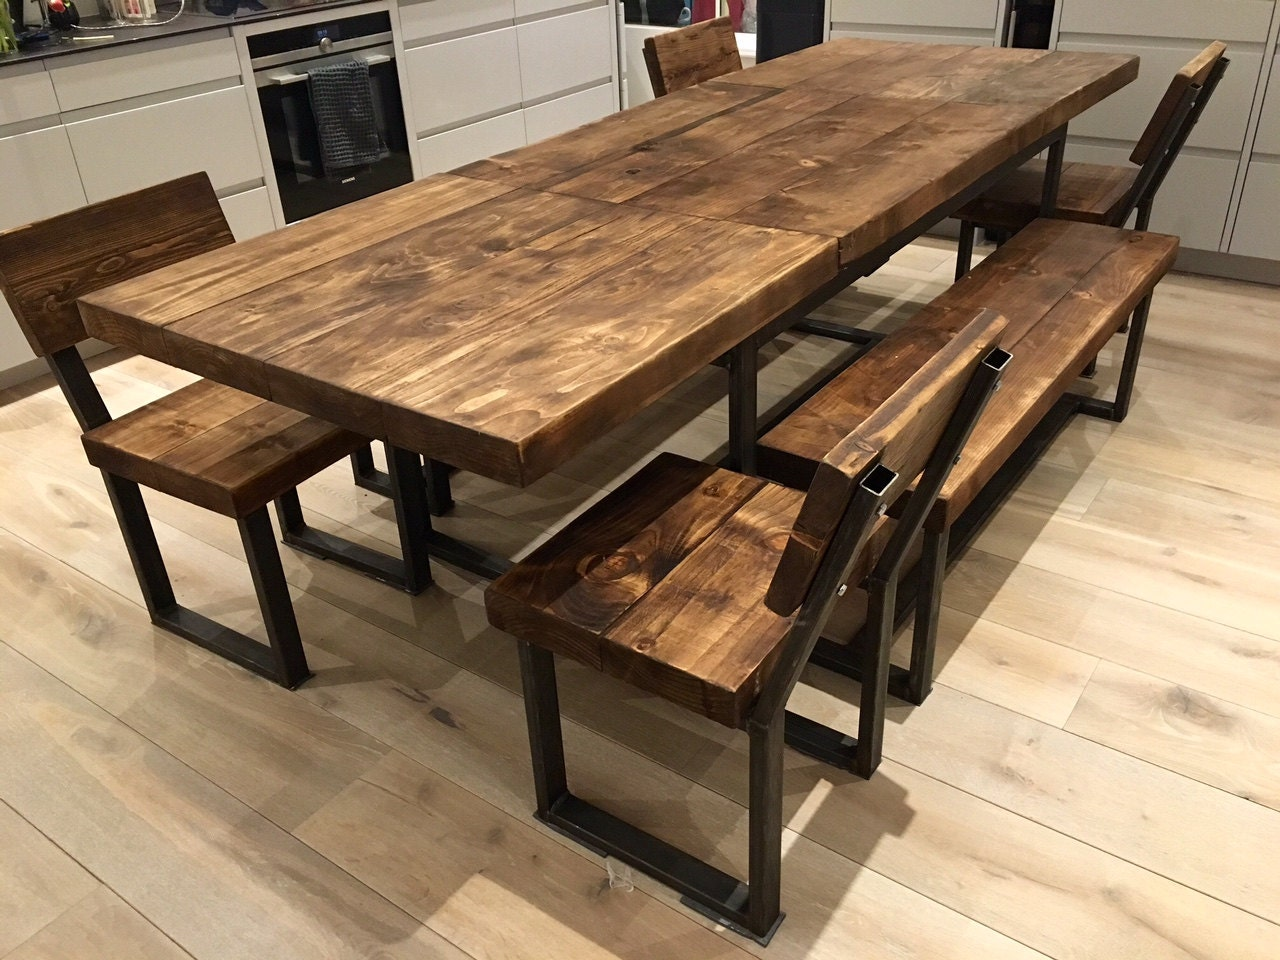 Reclaimed industrial chic 6 10 seater extending dining table for 10 seater dining table